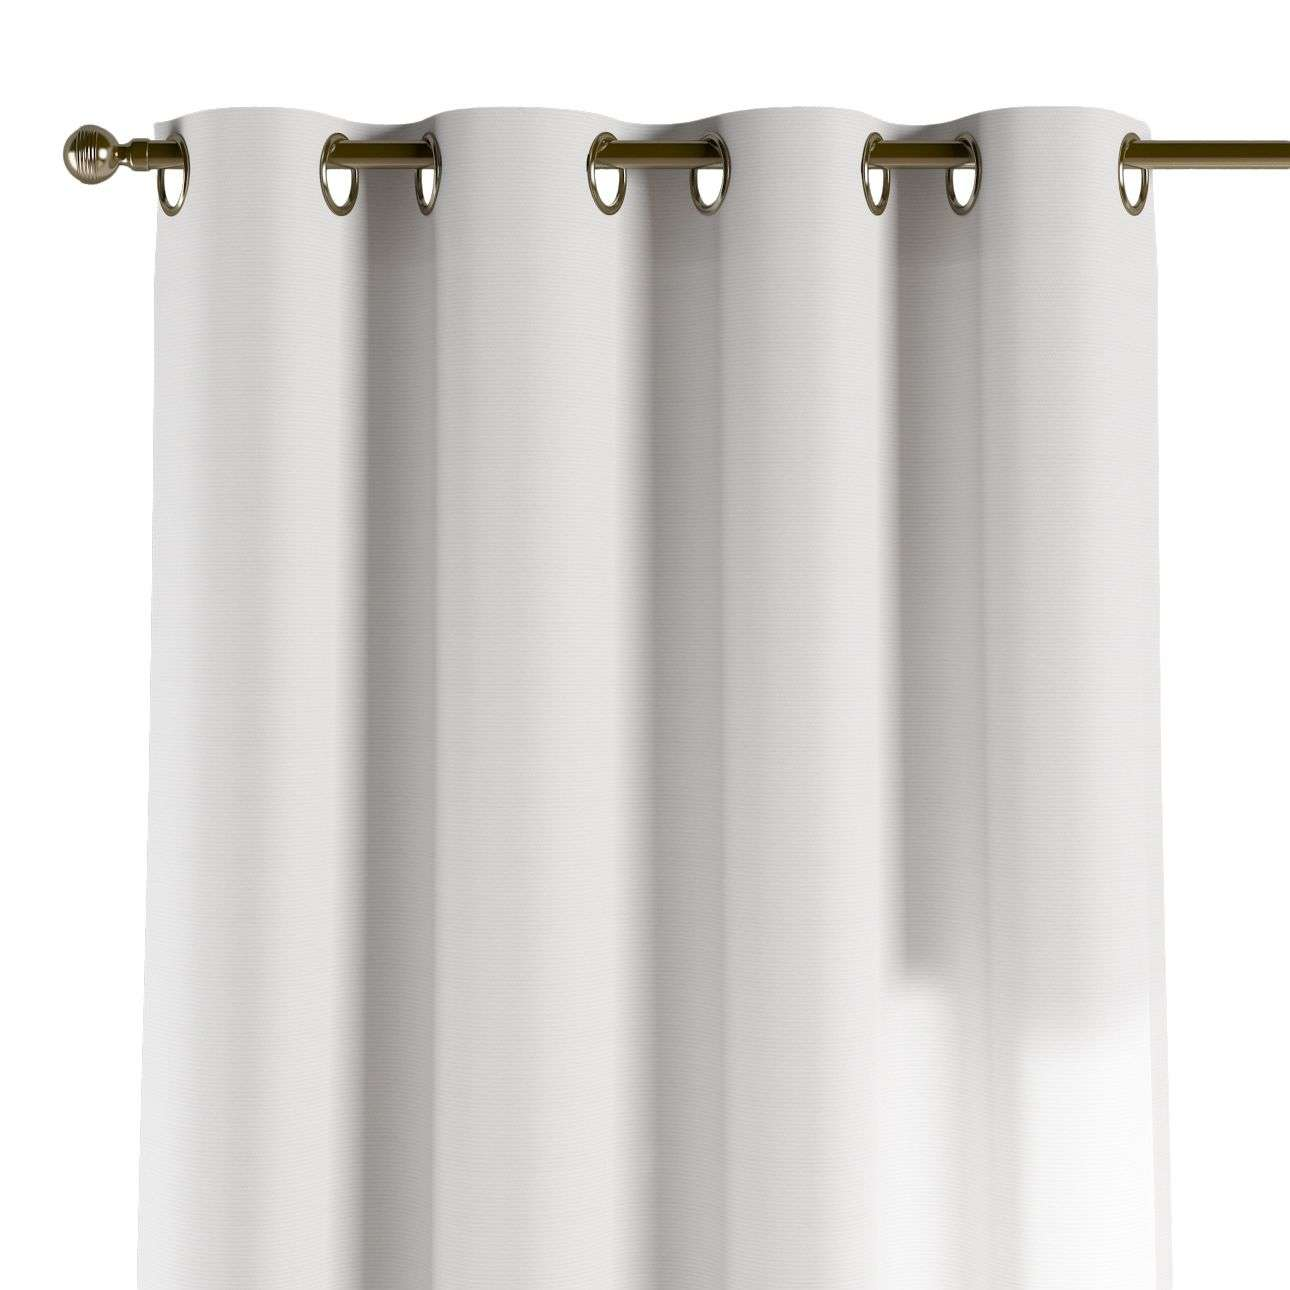 Eyelet curtains 130 × 260 cm (51 × 102 inch) in collection Jupiter, fabric: 127-01